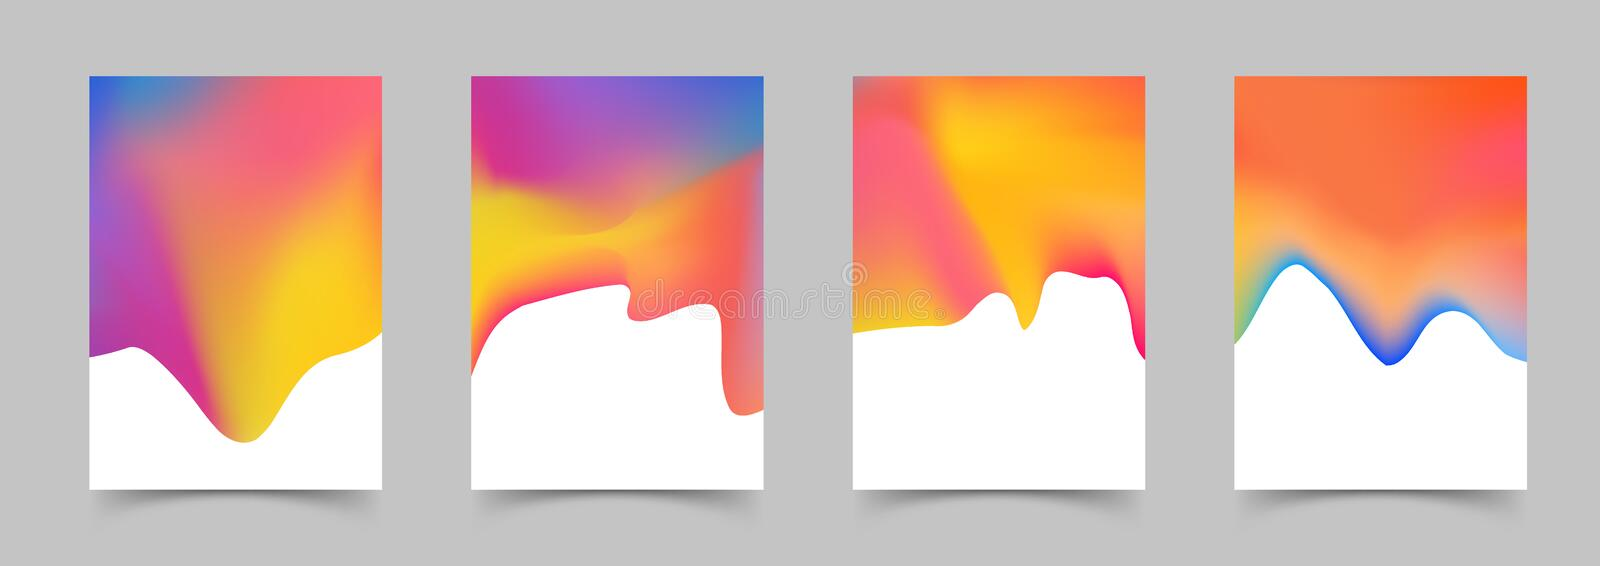 Liquid color Poster templates Modern Abstract Covers Collection. Elegant bright light paint colorful retro folder backgrounds set. Vector illustration stock illustration